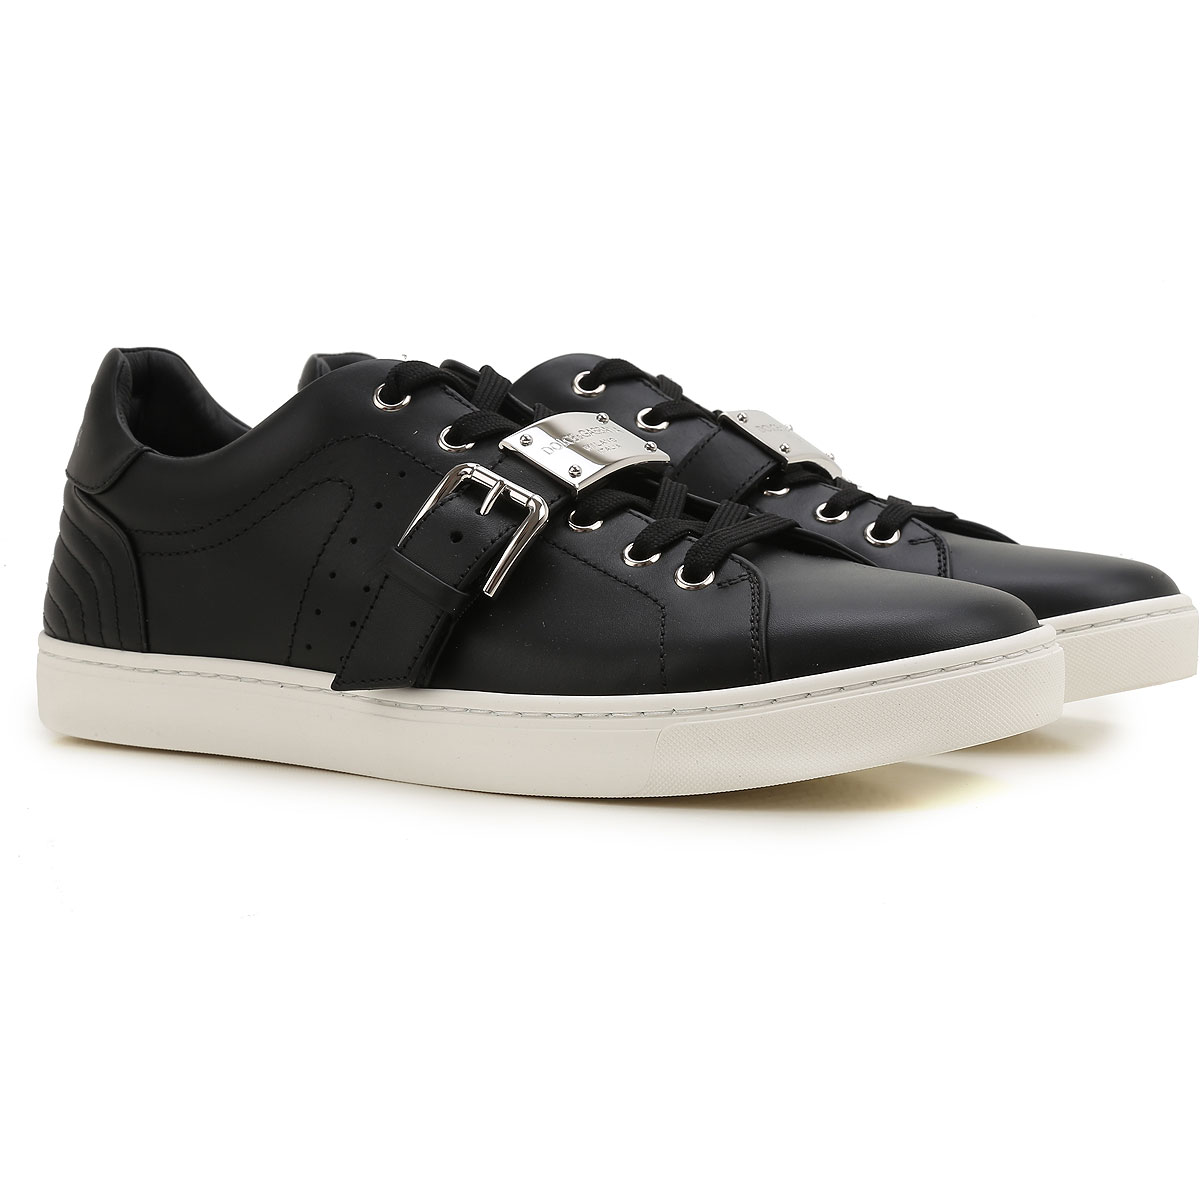 Sneakers for Men On Sale in Outlet, White, Leather, 2017, 5.5 6.75 8 Saint Laurent